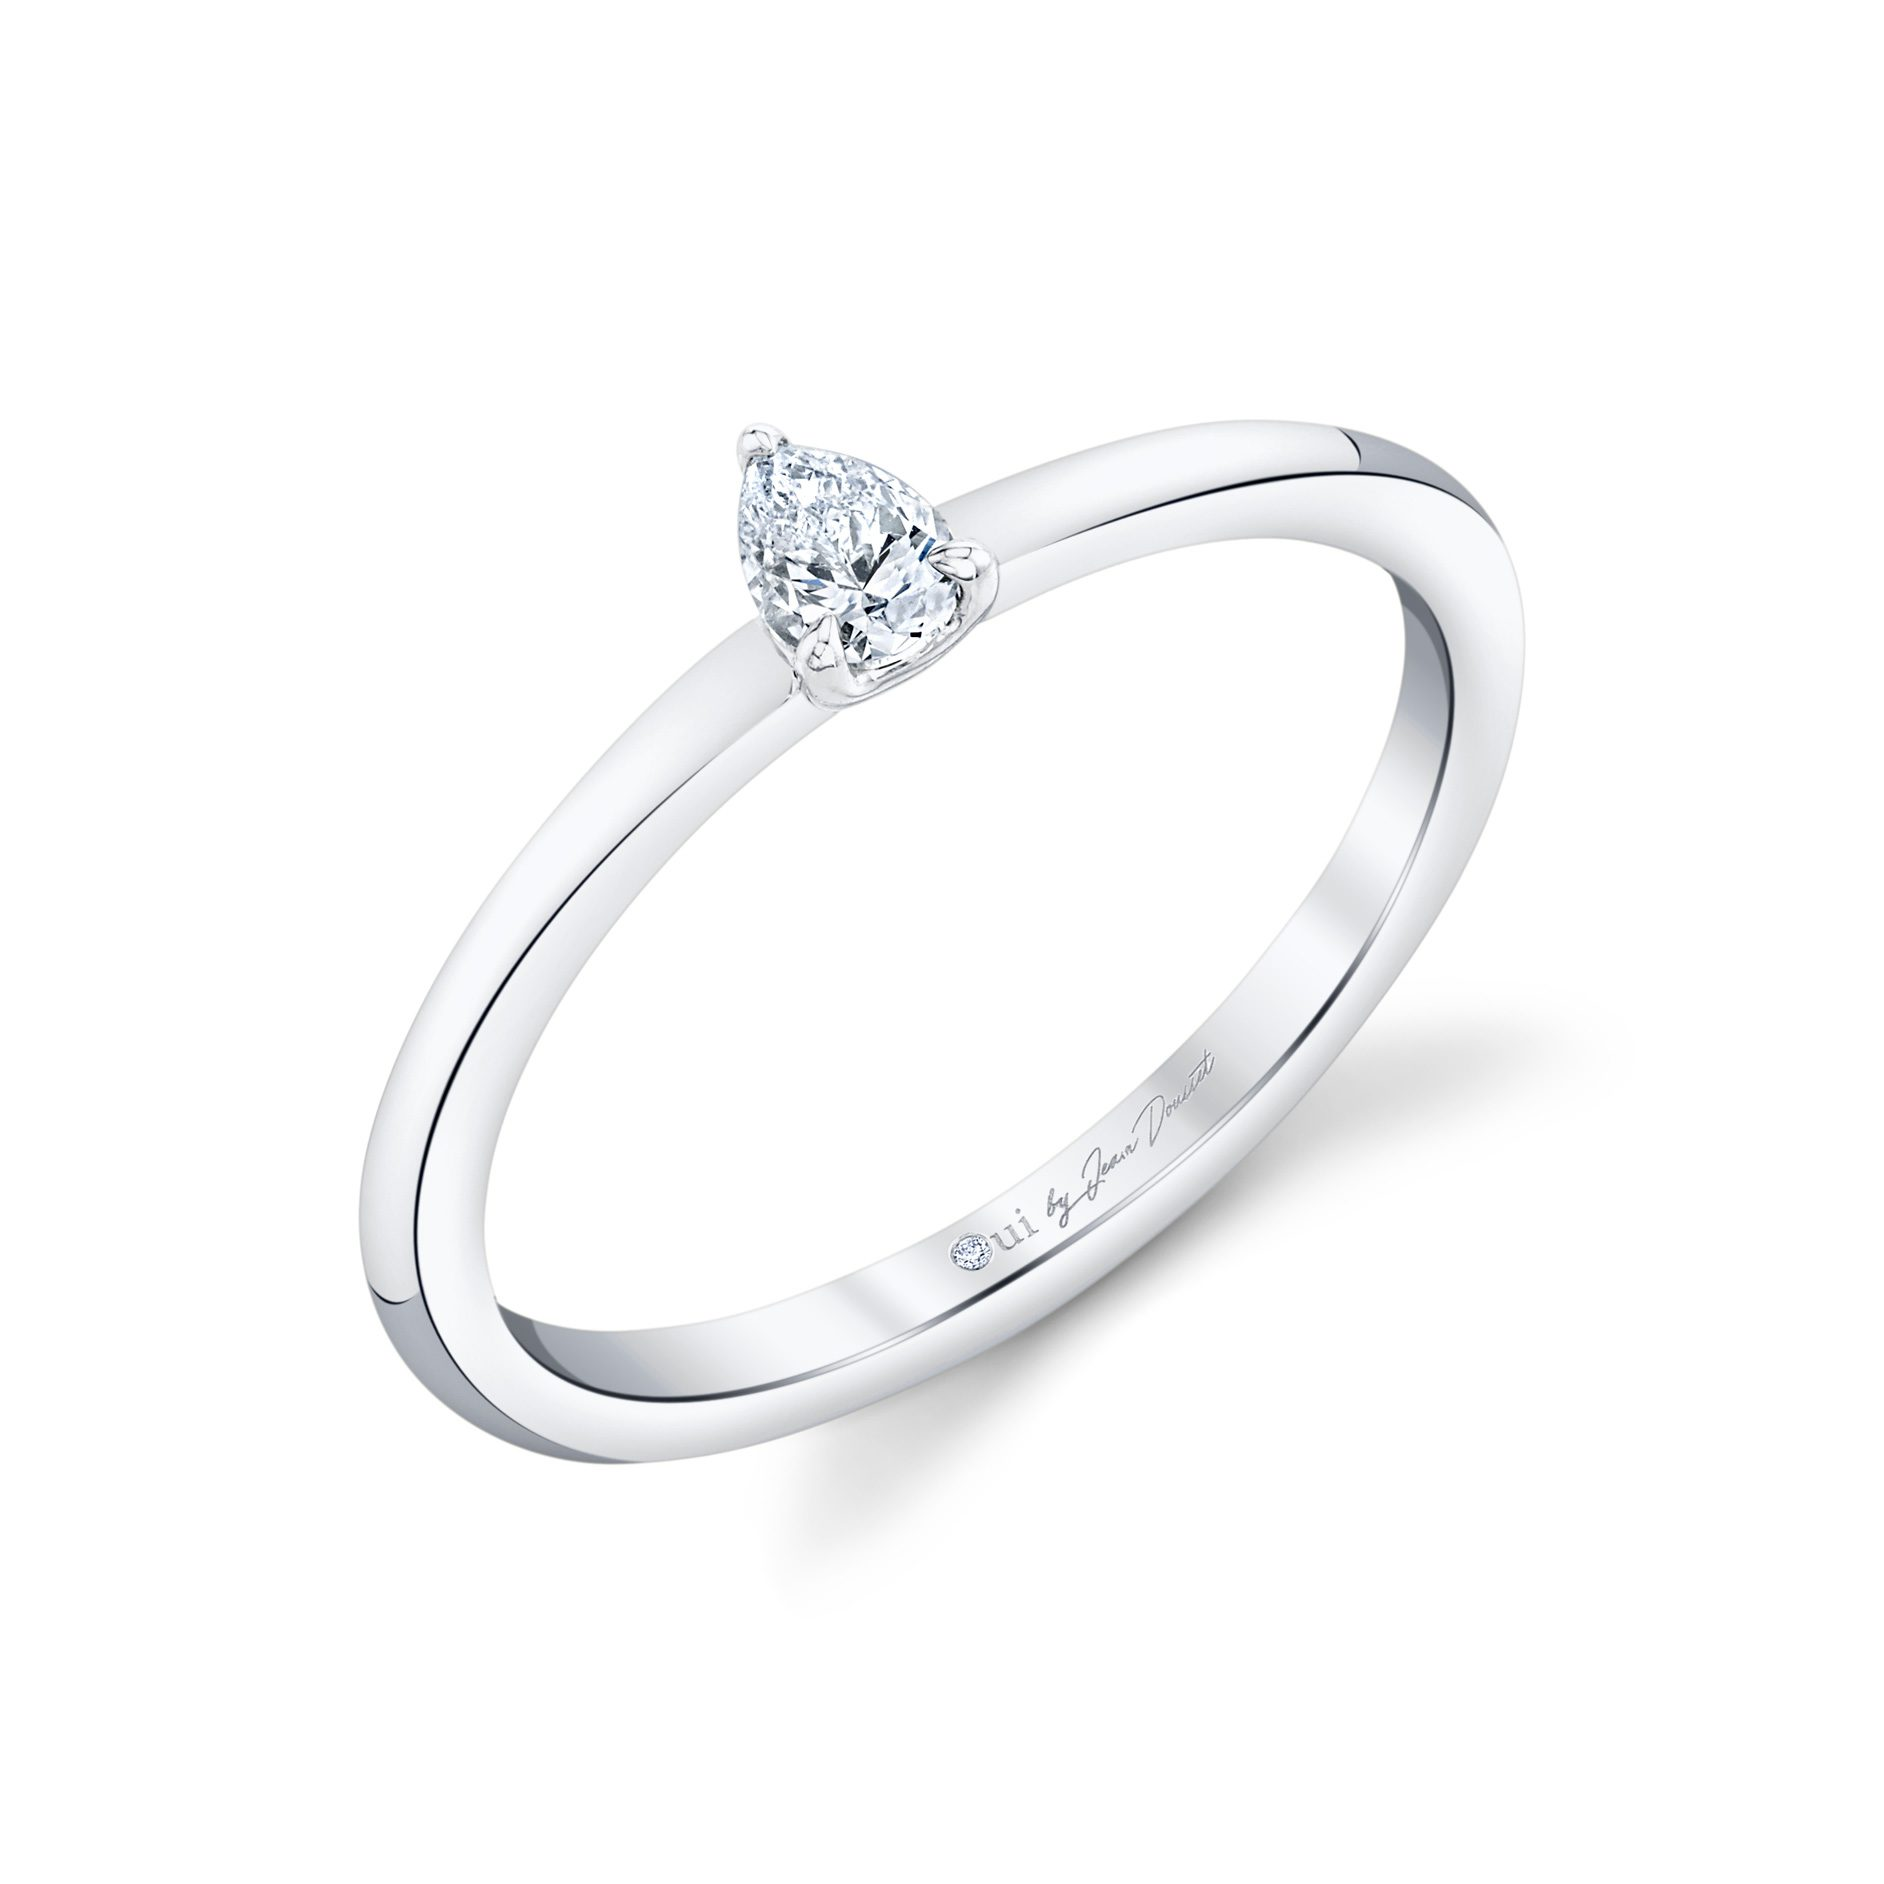 La Petite Pear Diamond Wedding Band in 18k White Gold Standing View by Oui by Jean Dousset